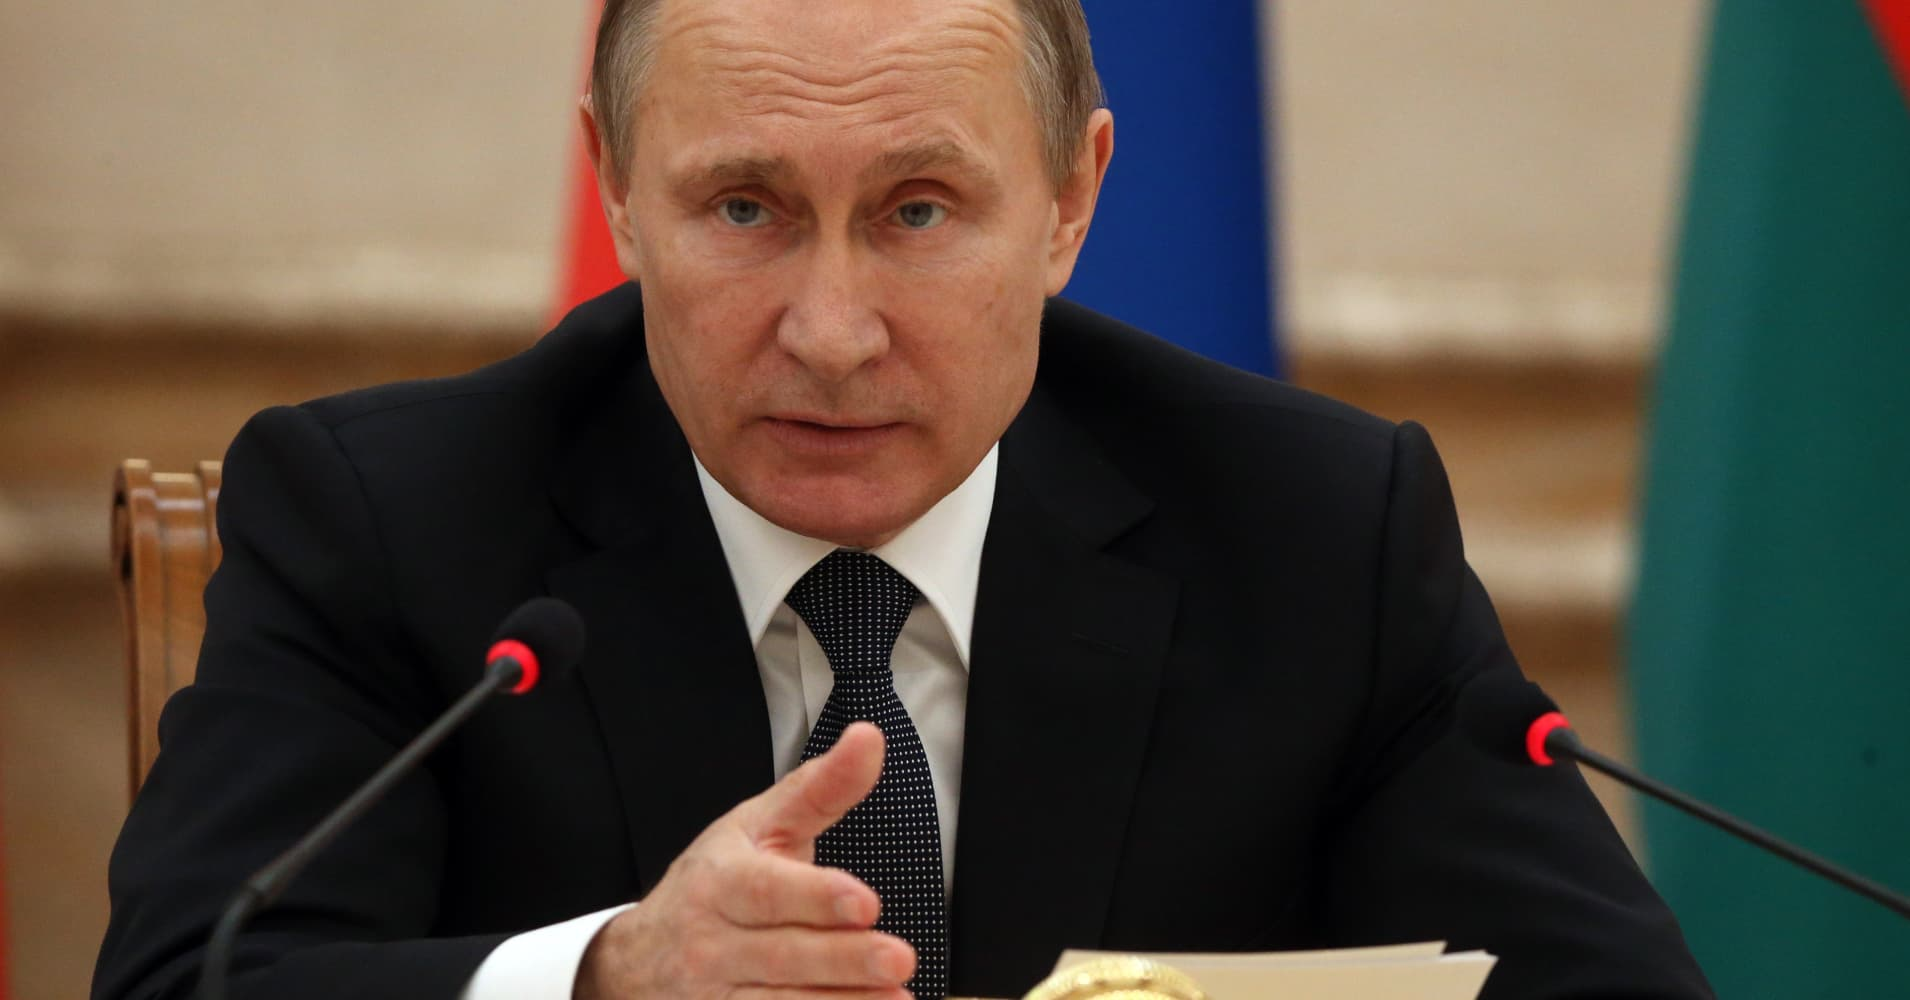 Climate change doubters may not be so silly, says Russia President Putin